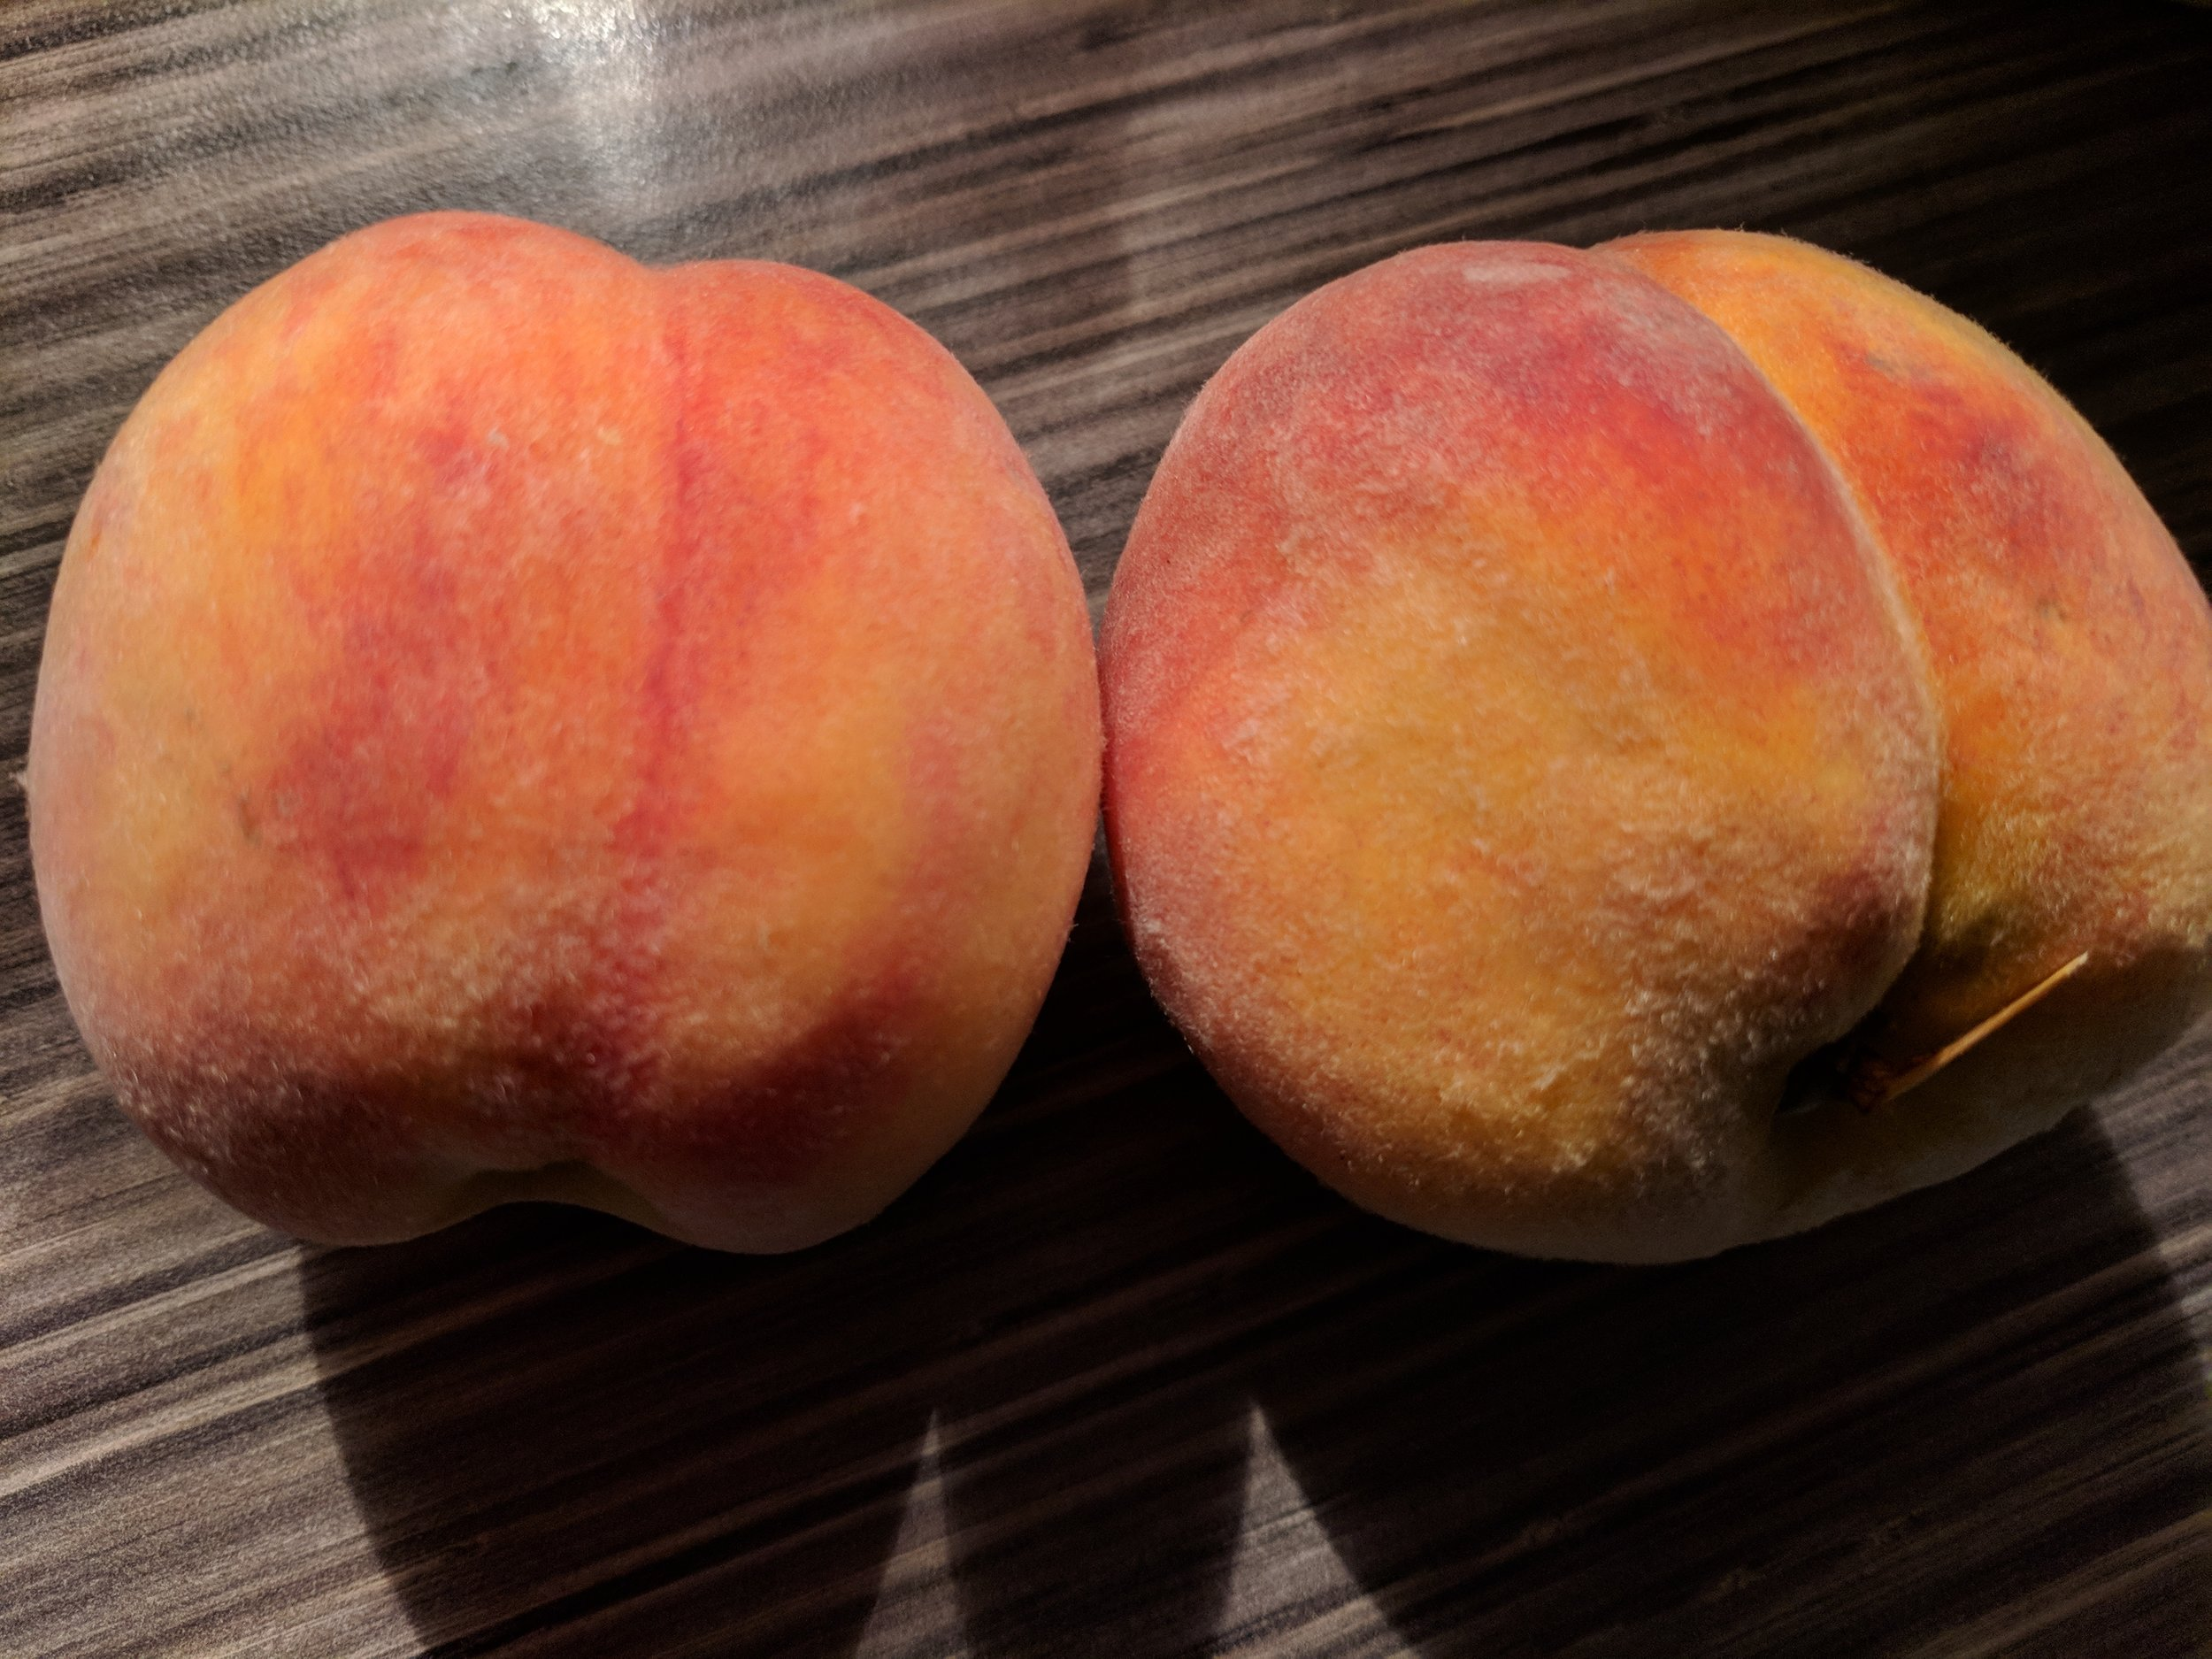 Niagara peach on the left. Ruthven peach on the right. BOTH SO DELICIOUS.